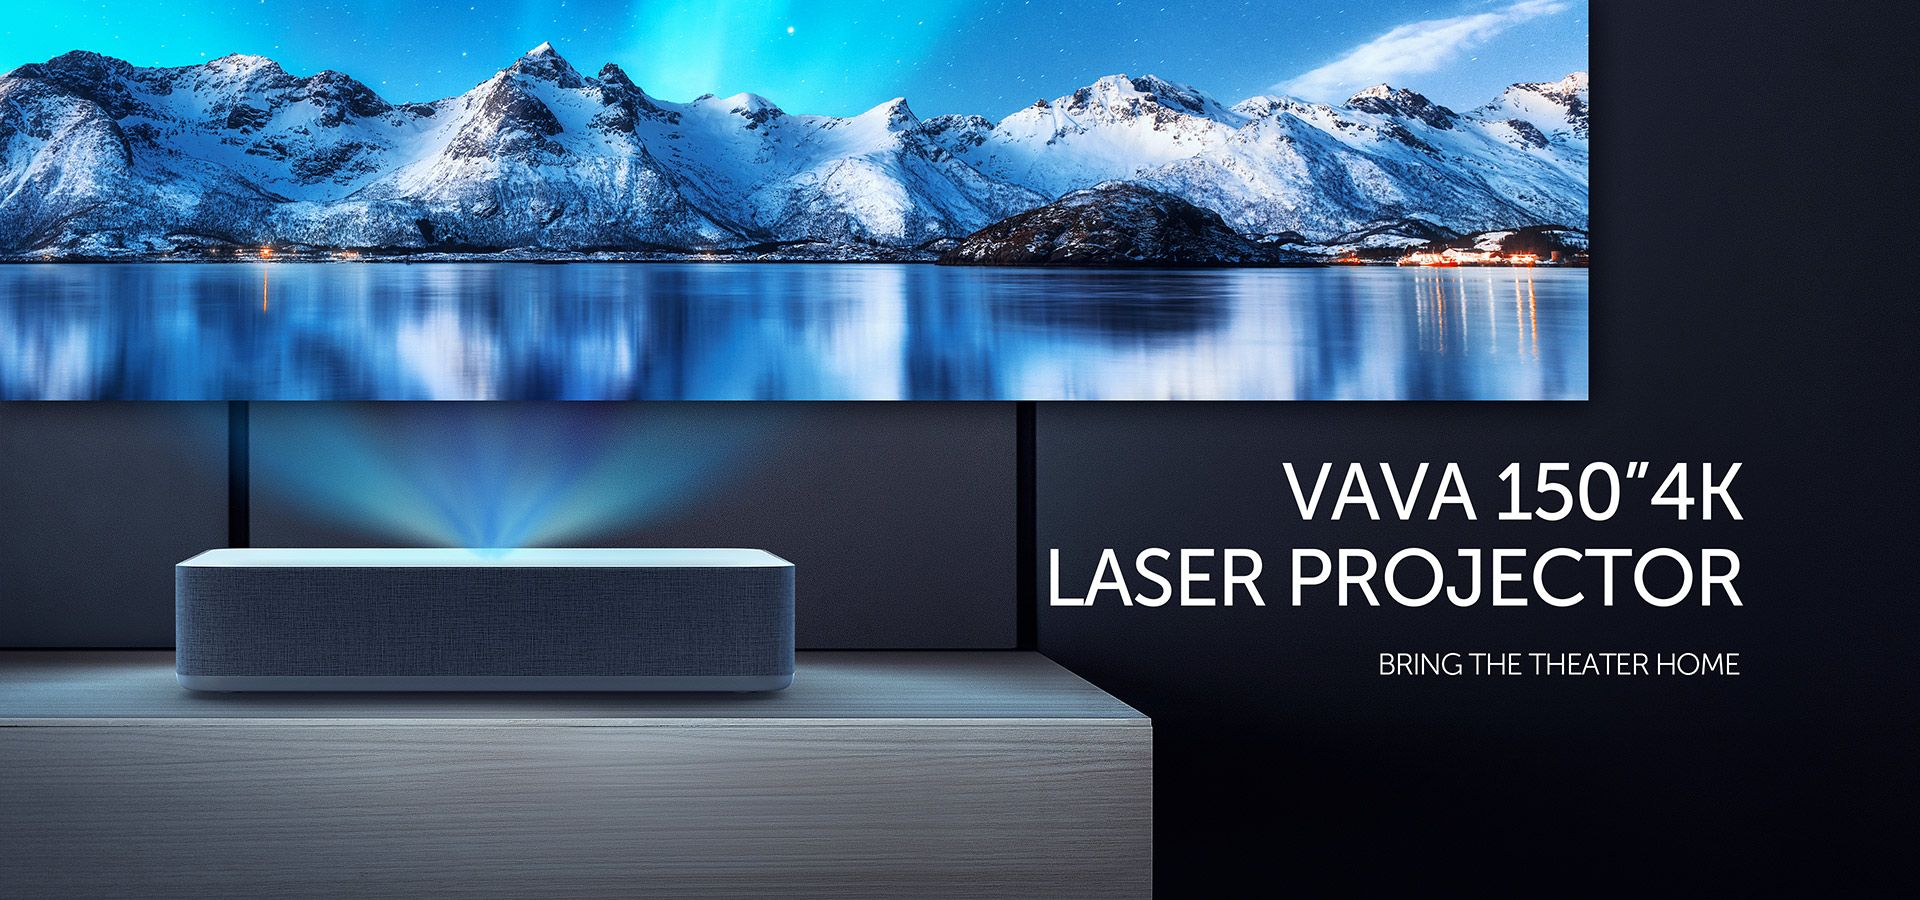 vava 4k ultra short throw laser projector